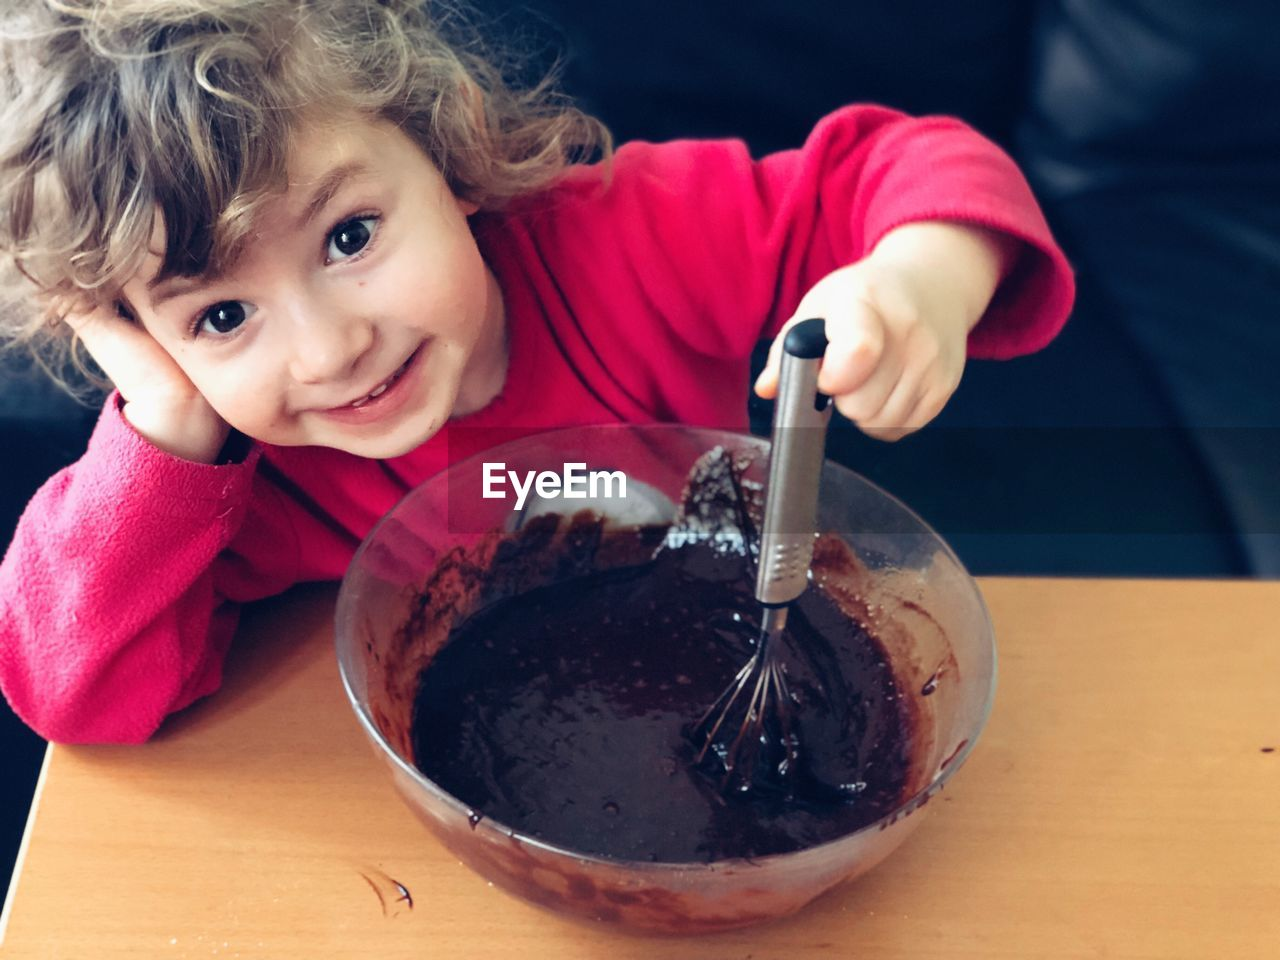 Cute girl holding wire whisk in bowl on table